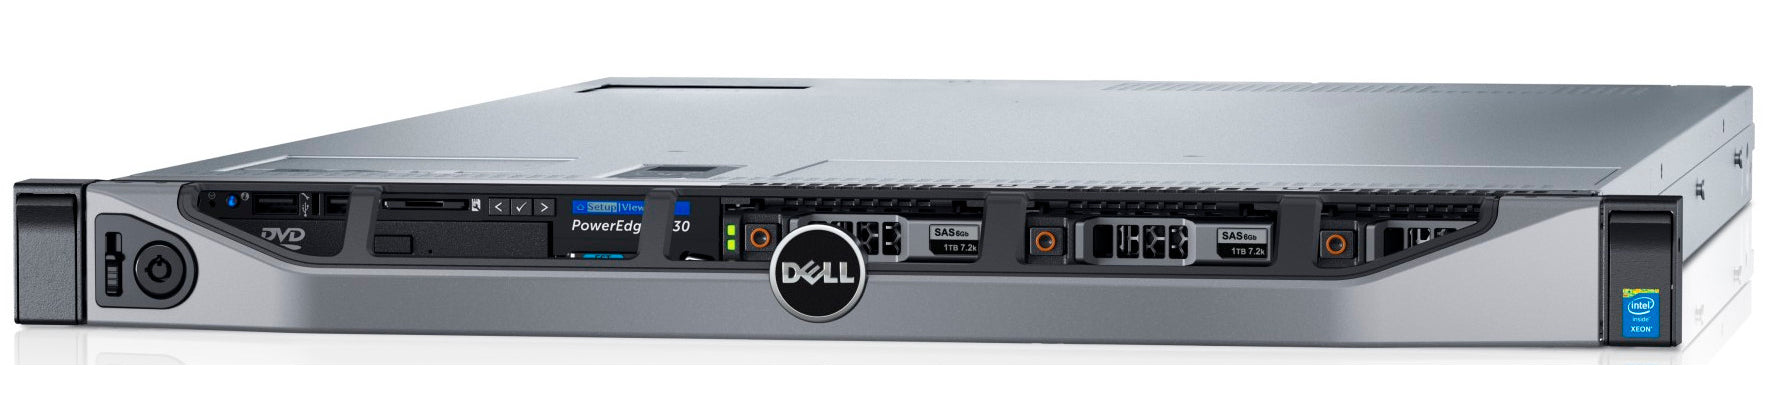 Dell PowerEdge R630 CTO Rack Server